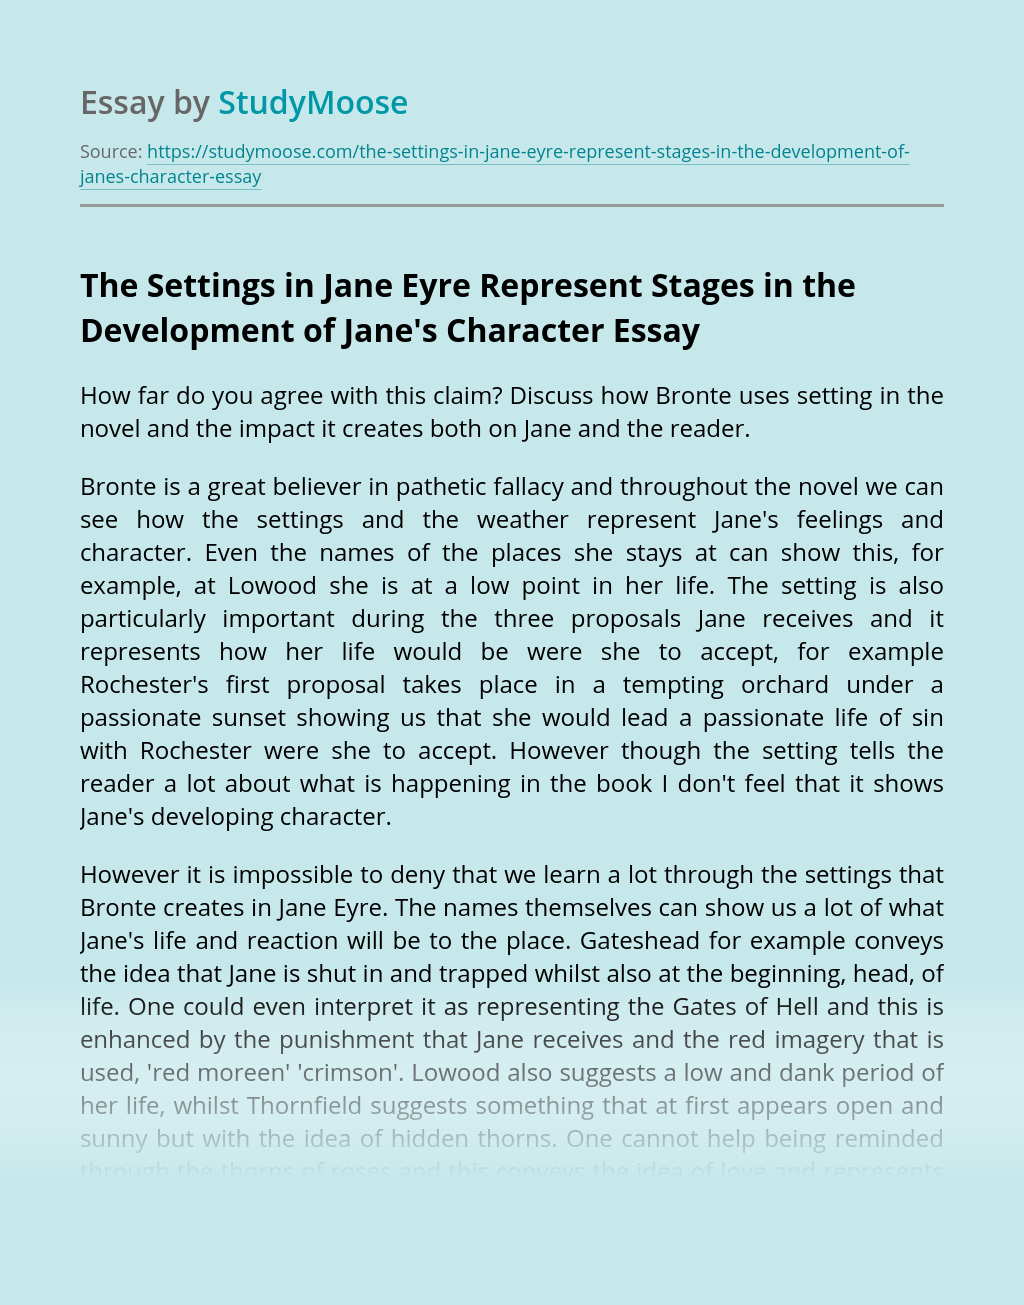 The Settings in Jane Eyre Represent Stages in the Development of Jane's Character